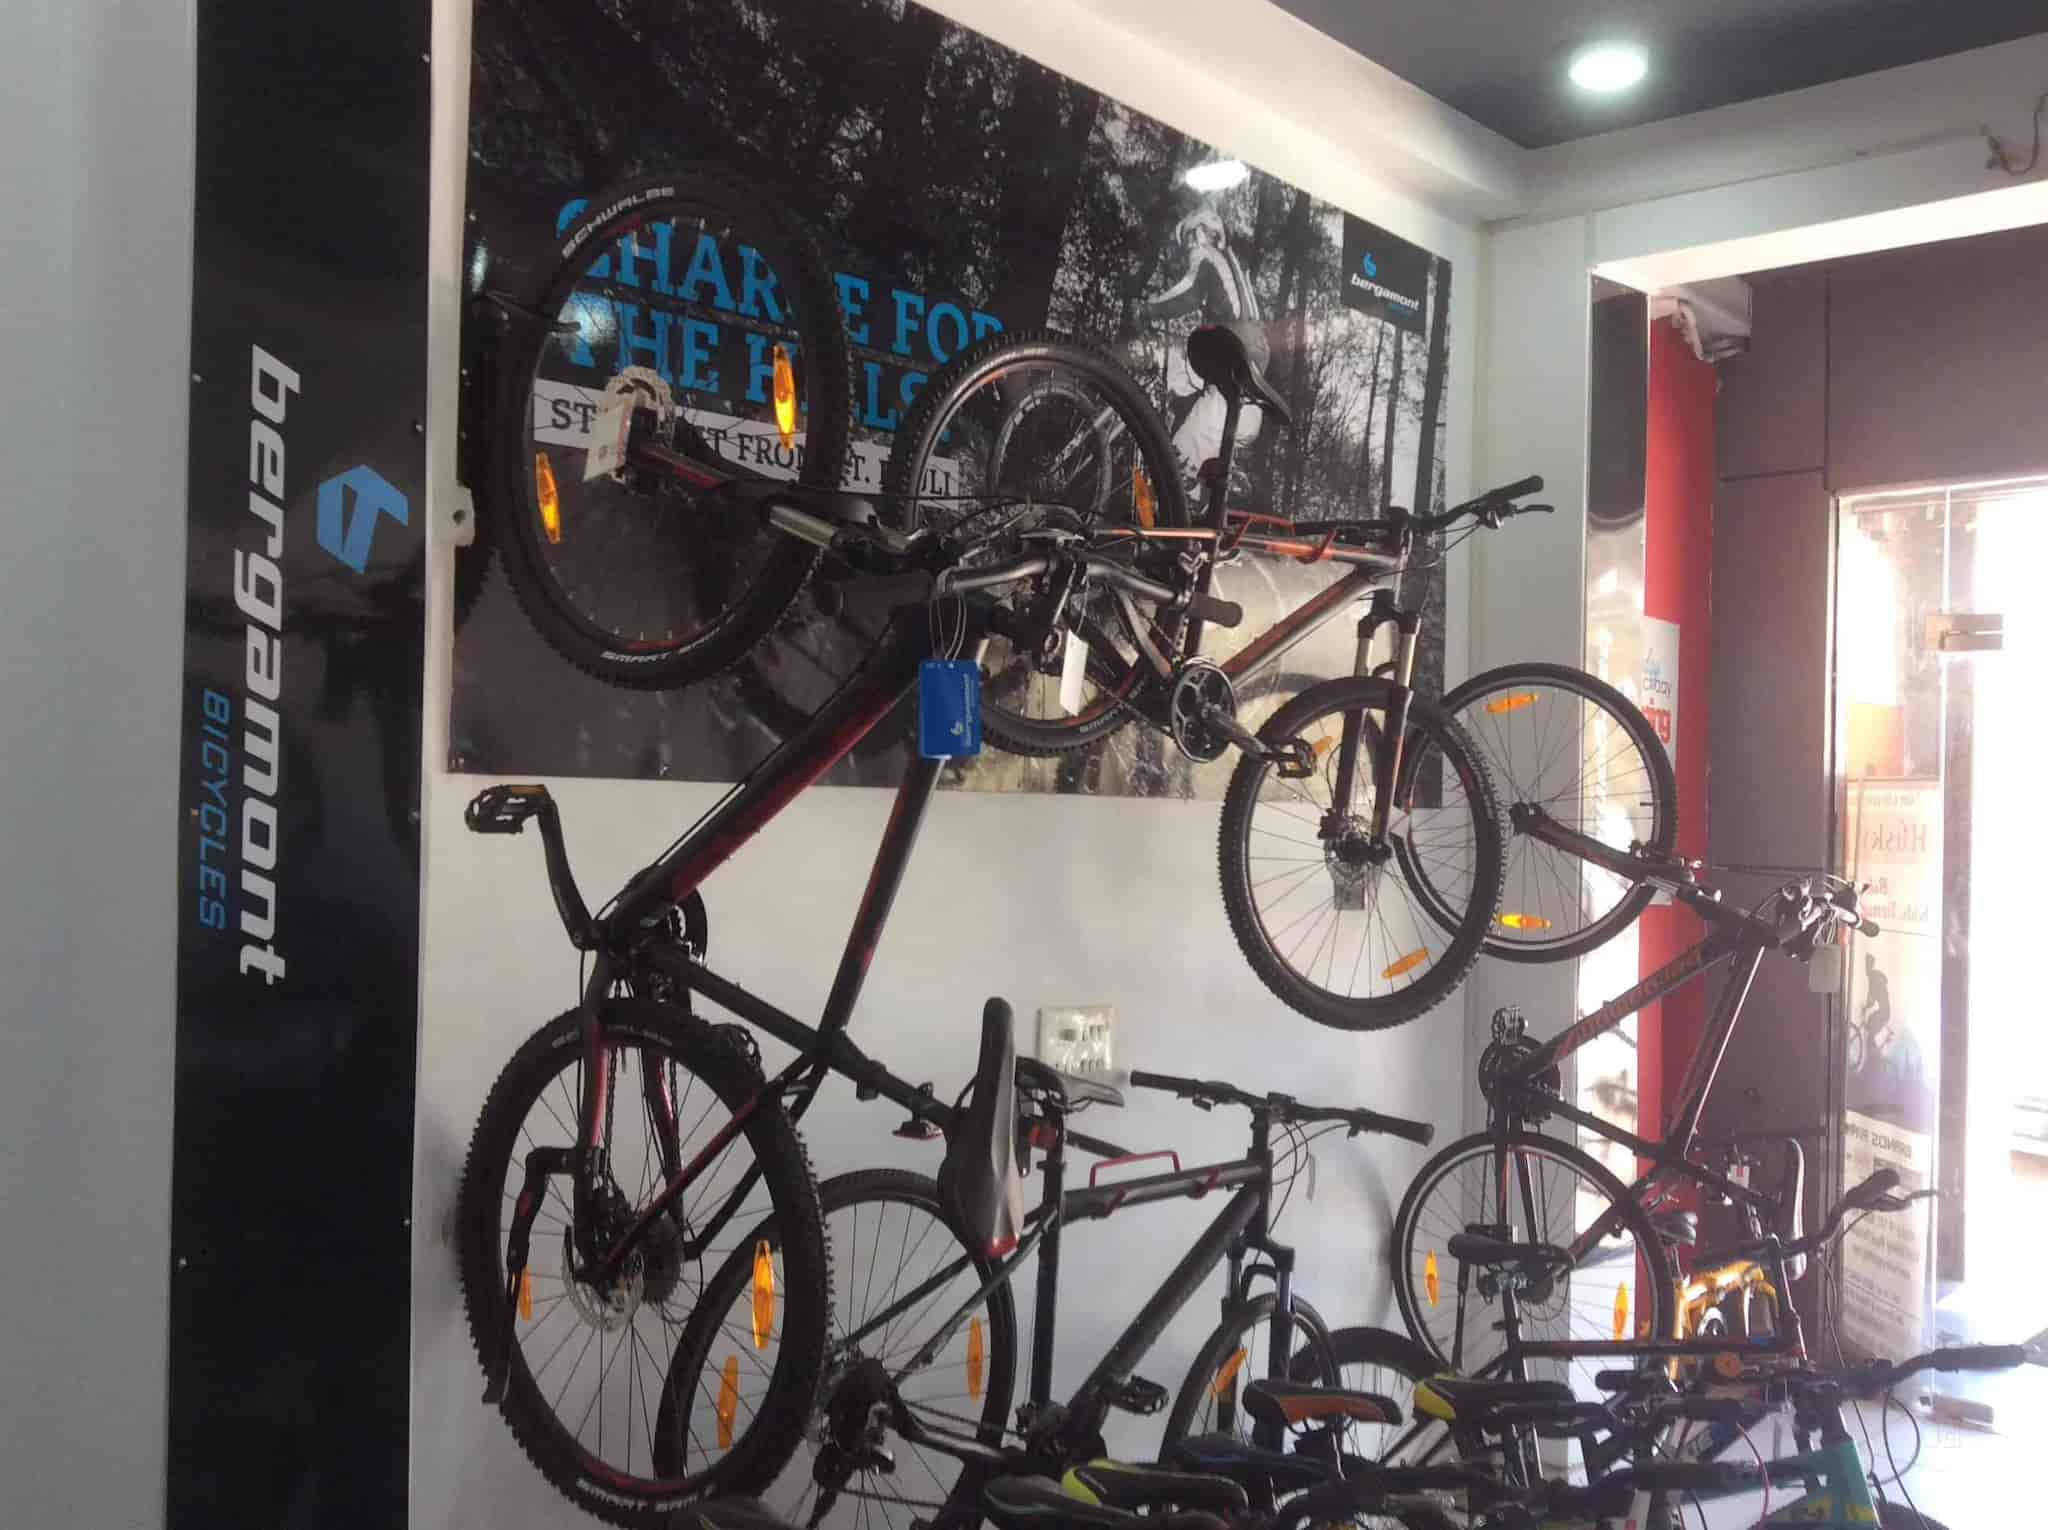 Husky Store Husky Store Photos Faridabad Nit Faridabad Pictures Images